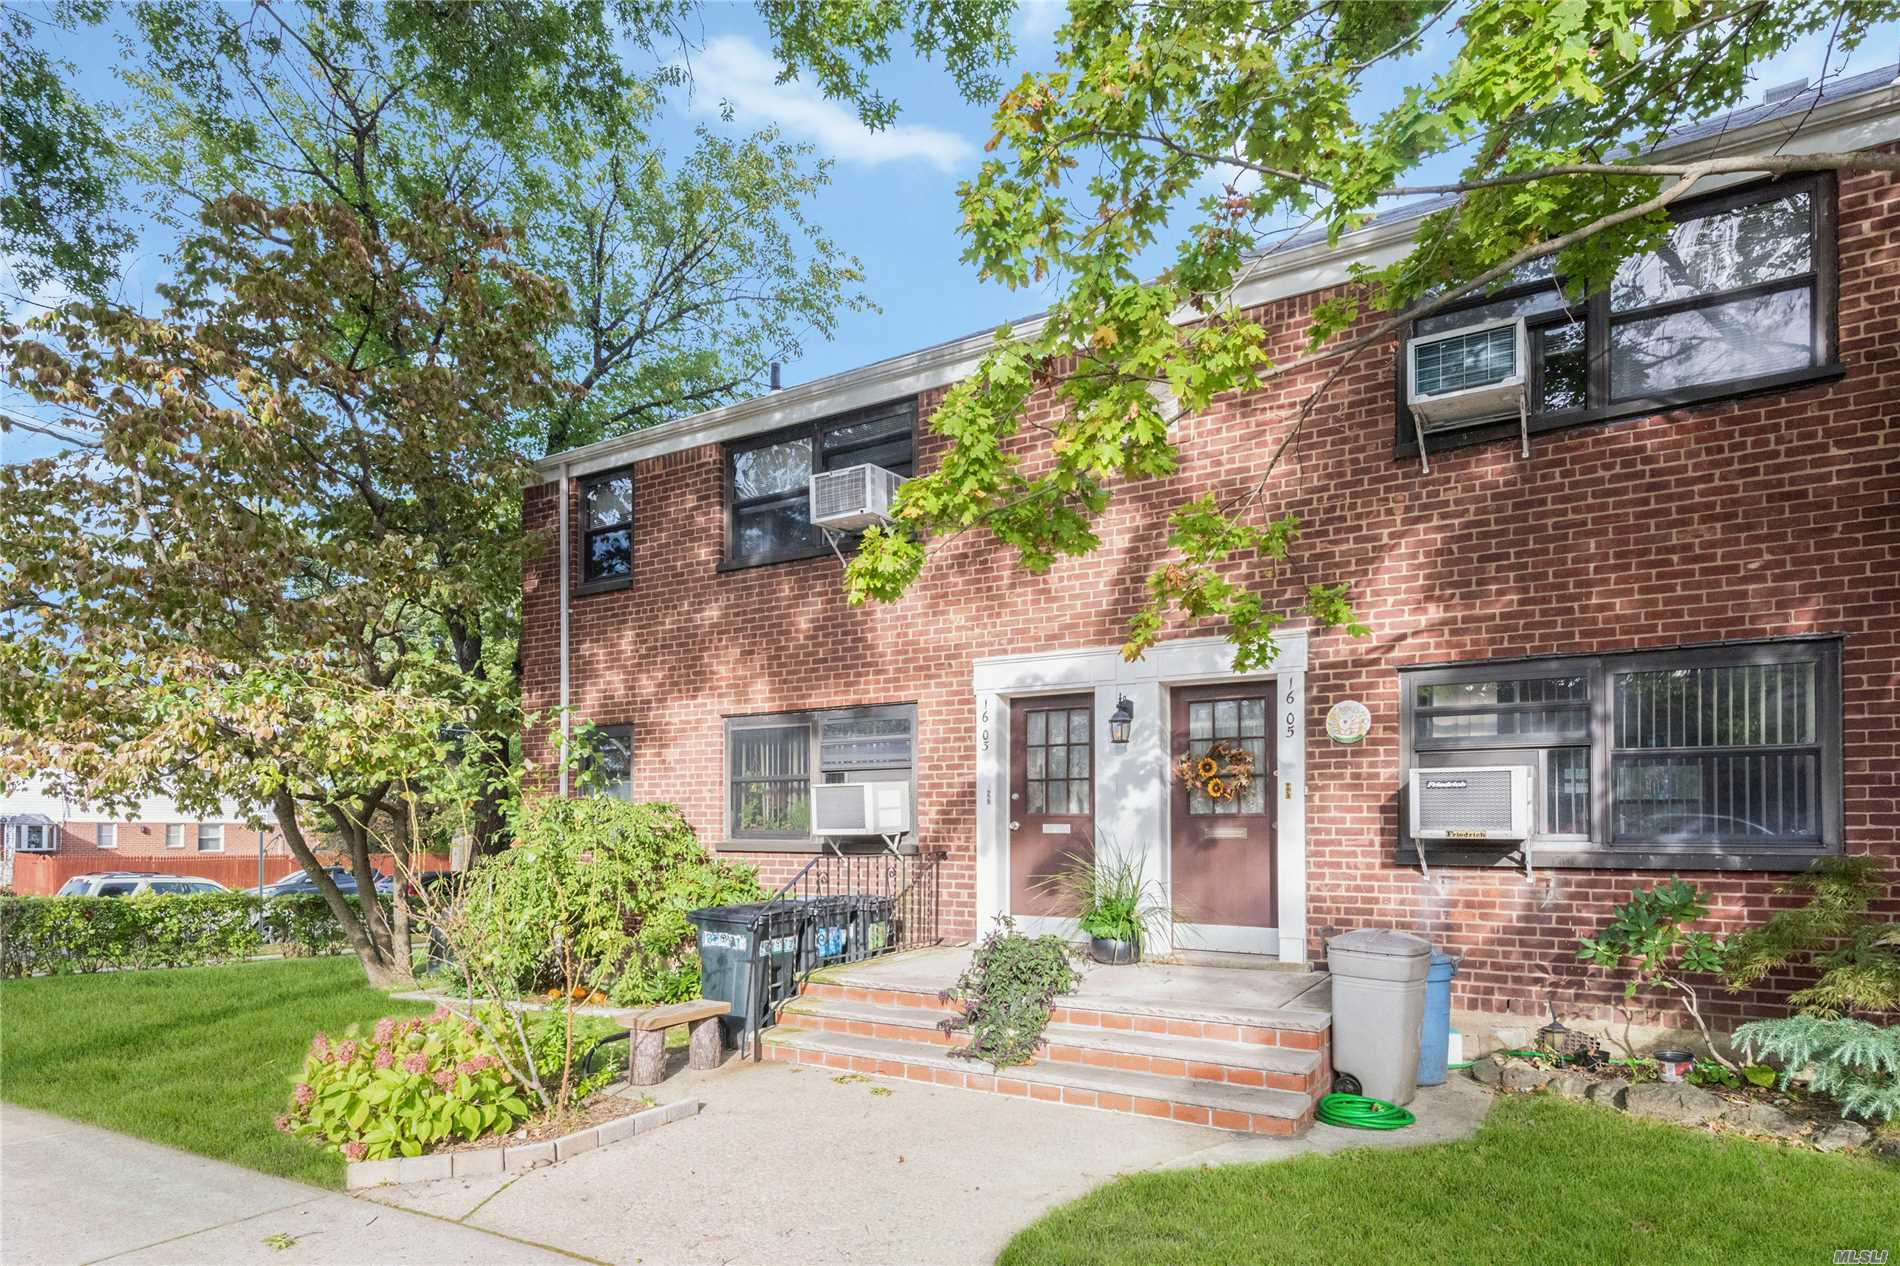 This Beautiful One Bedroom Upper Unit Is Move In Ready. Living/Dining Room Combo, Kitchen With Stainless Steel Appliances, One Large Bedroom, One Full Bathroom And An Attic For Storage. This Unit Includes A Washer/Dryer. It Is A Corner Unit Which Creates Great Light Throughout The Living Space!